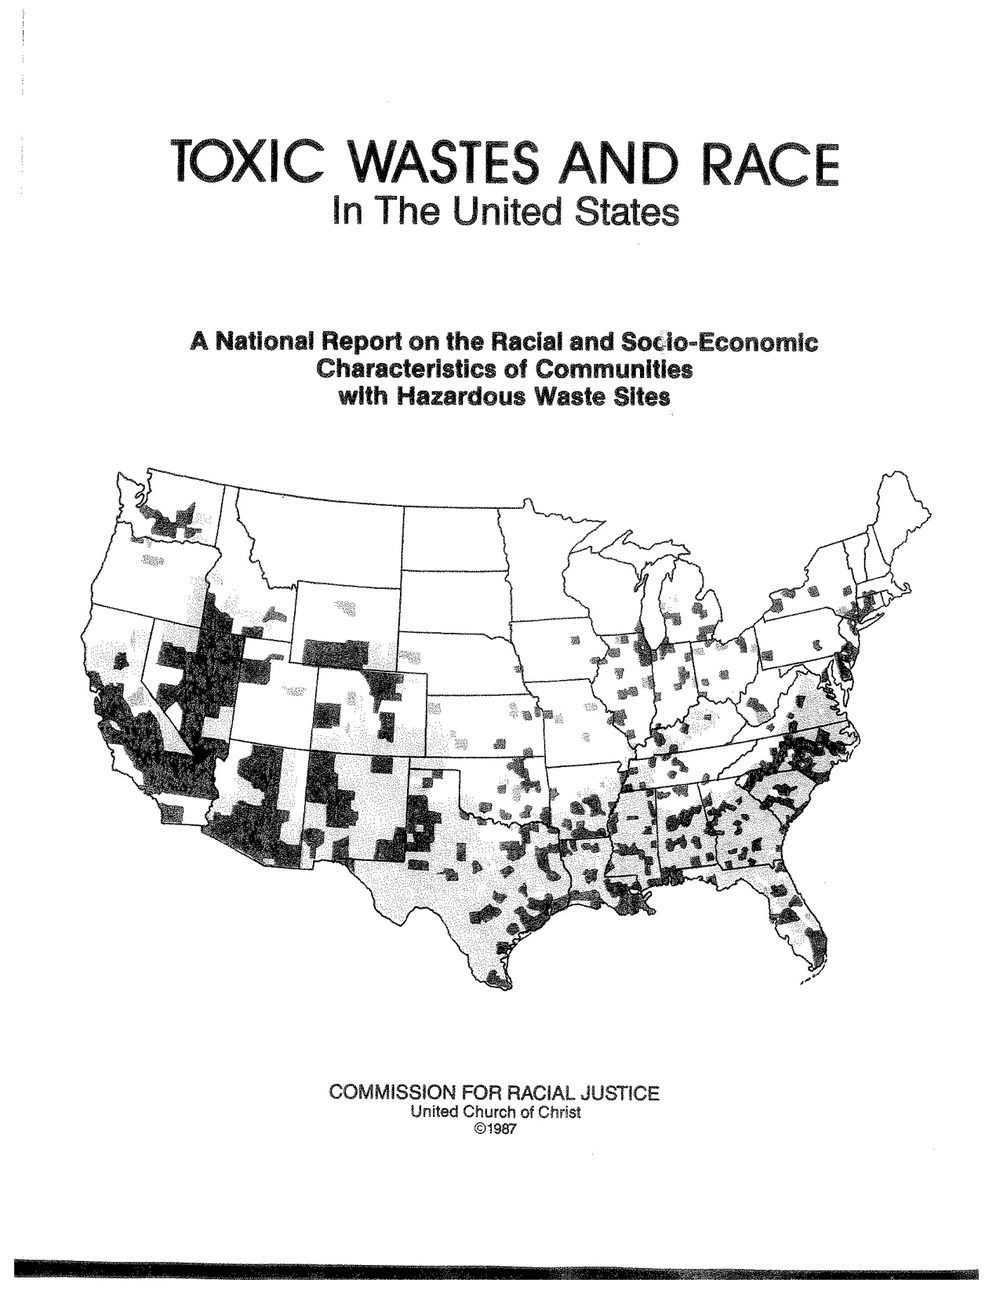 Toxic Wastes and Race